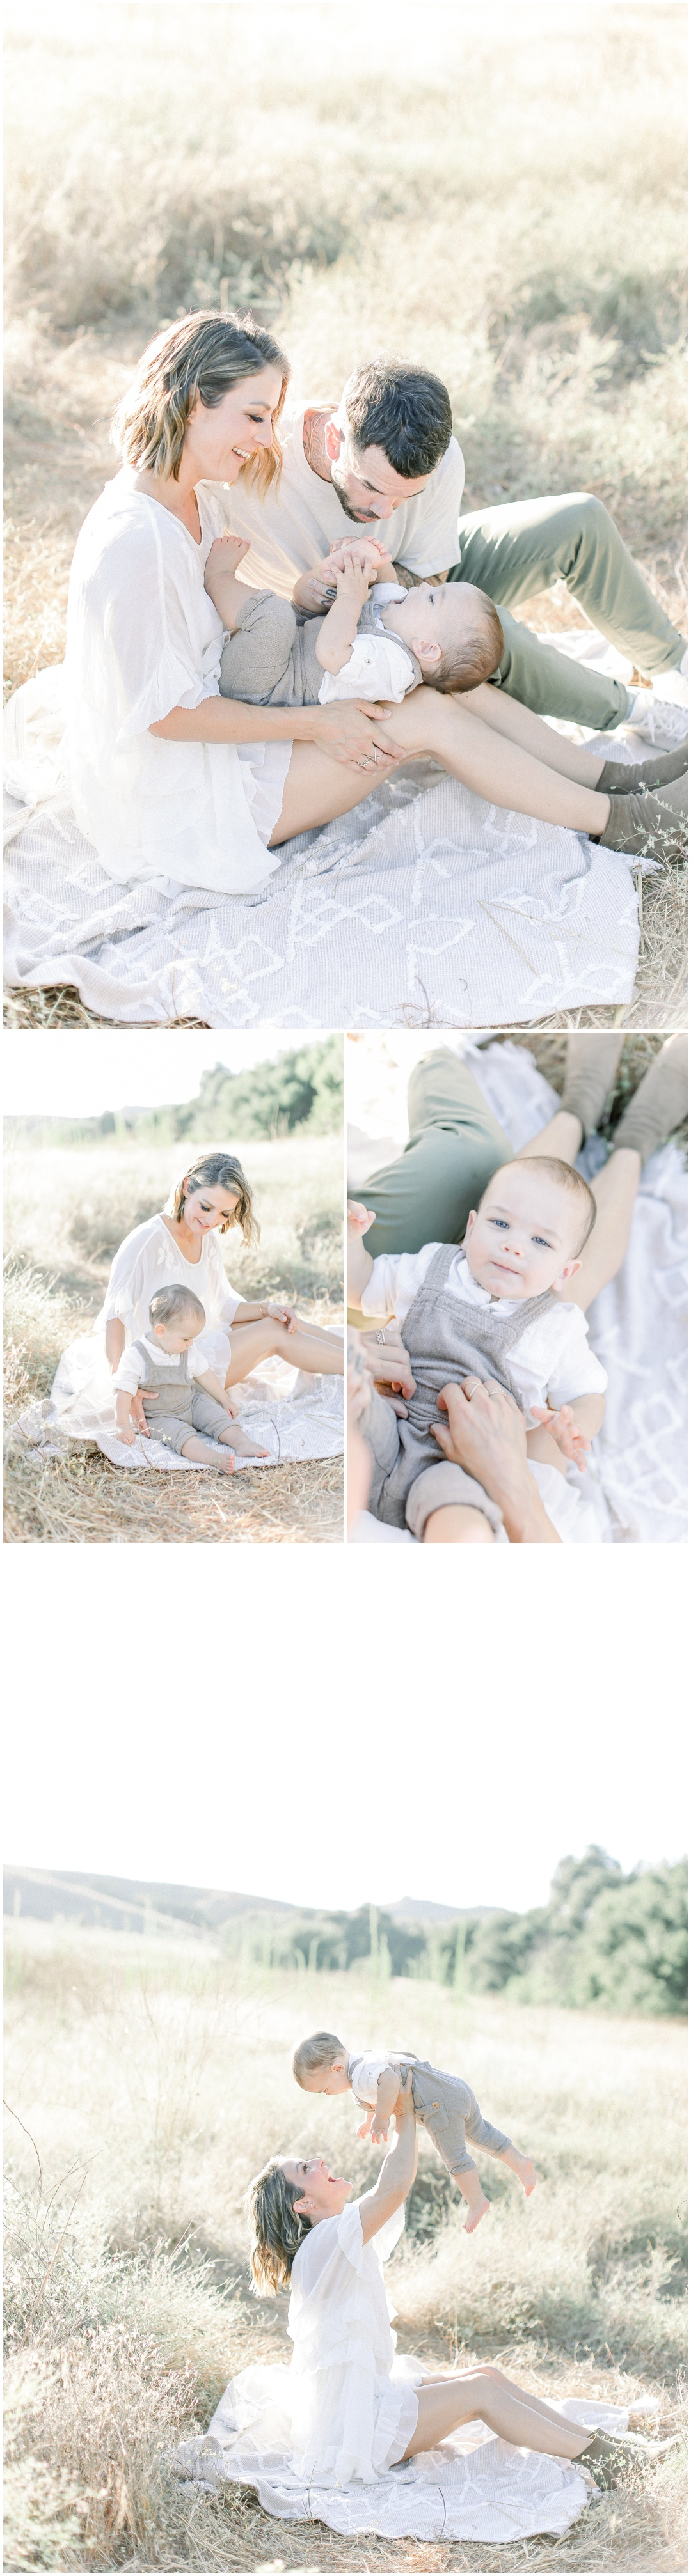 Newport_Beach_Family_Session_Orange_County_Family_Photographer_Thomas_Riley_Wilderness_Park_Carrie_Stotts_Sean_Stotts__4318.jpg